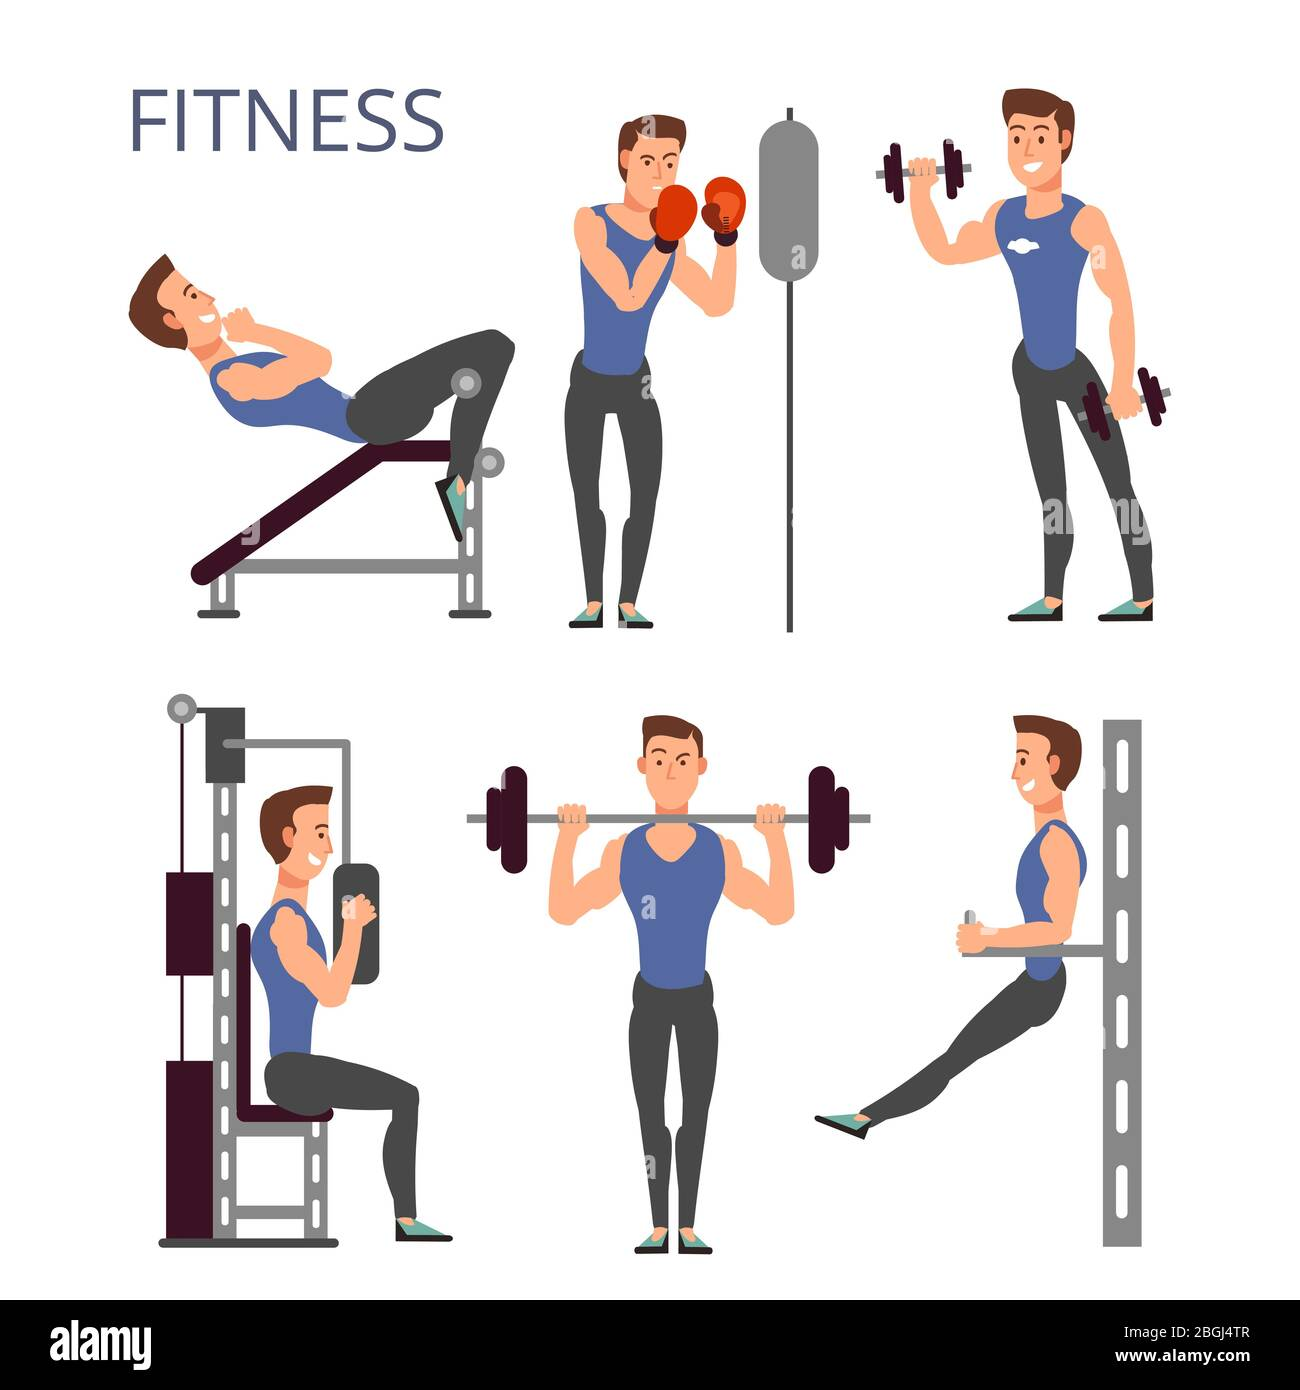 Gym Exercises Body Pump Workout Vector Set With Cartoon Sport Man Characters Fitness People In Gym Illustration Stock Vector Image Art Alamy